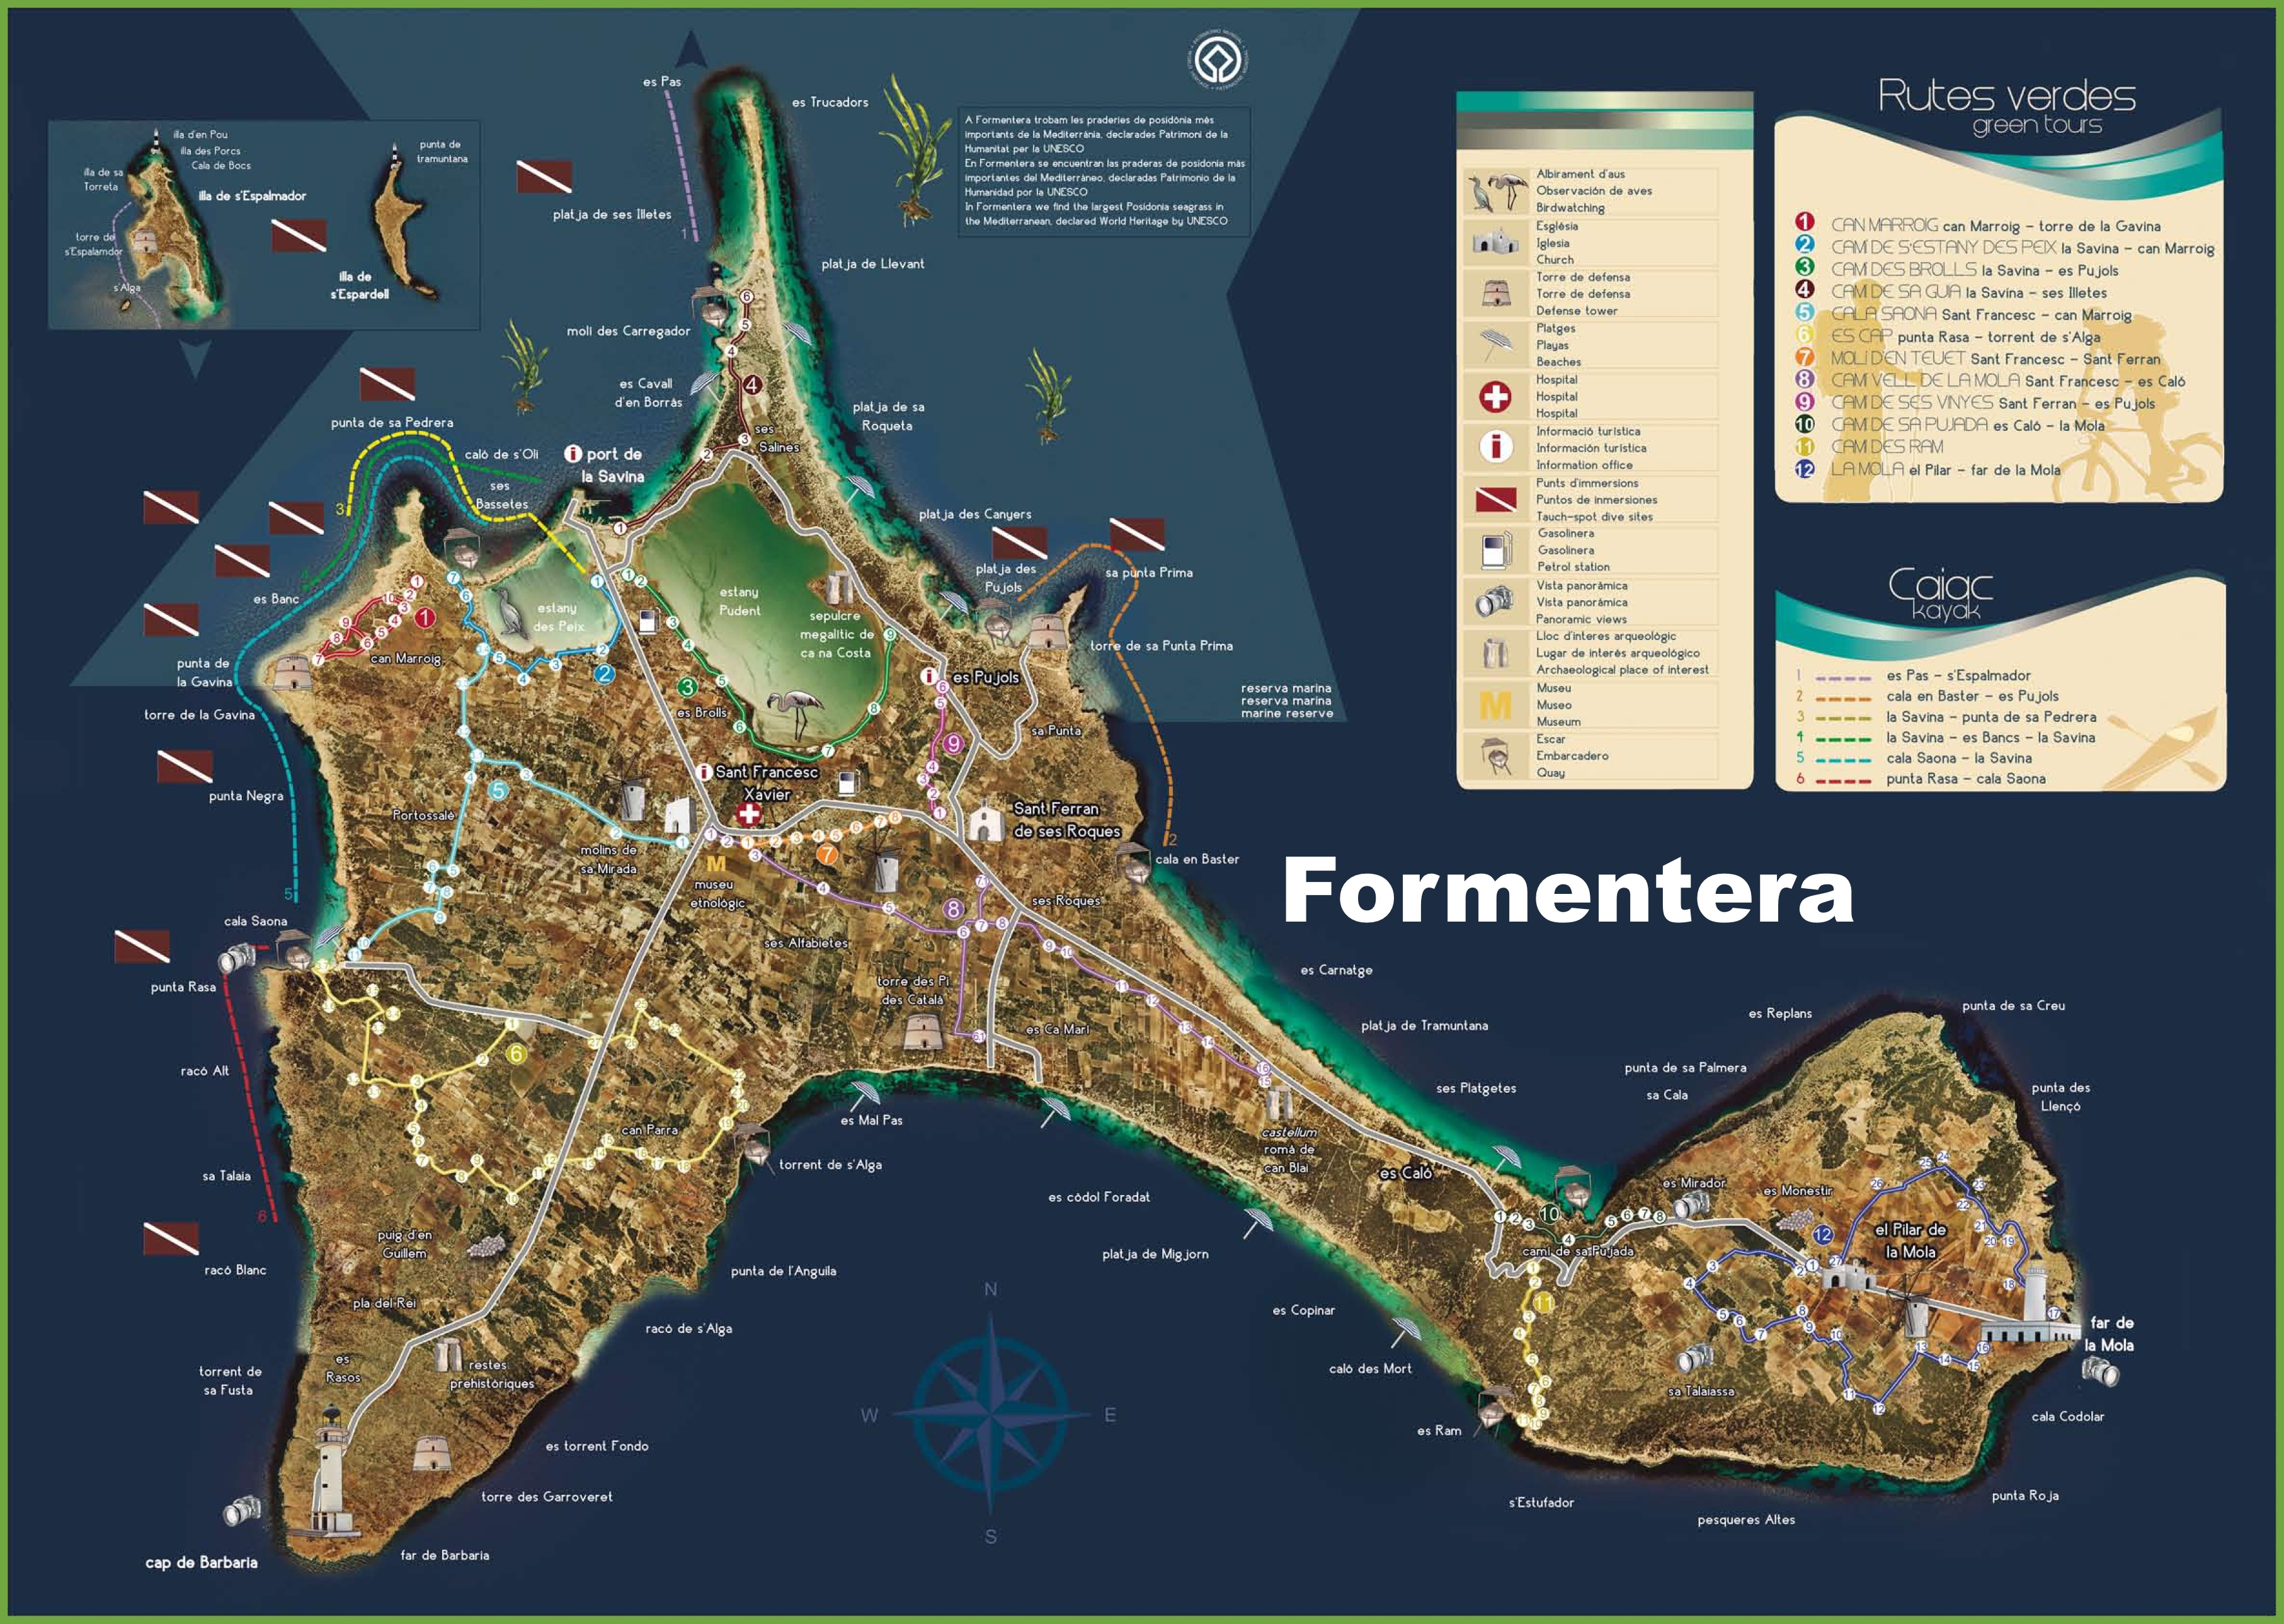 north and south america map with Formentera Tourist Map on Istanbul Neighborhood Map also Formentera Tourist Map likewise 02 Horizontal Colorful Roadmap Design further Political And Administrative Map Of Sweden With Roads And Major Cities in addition America.